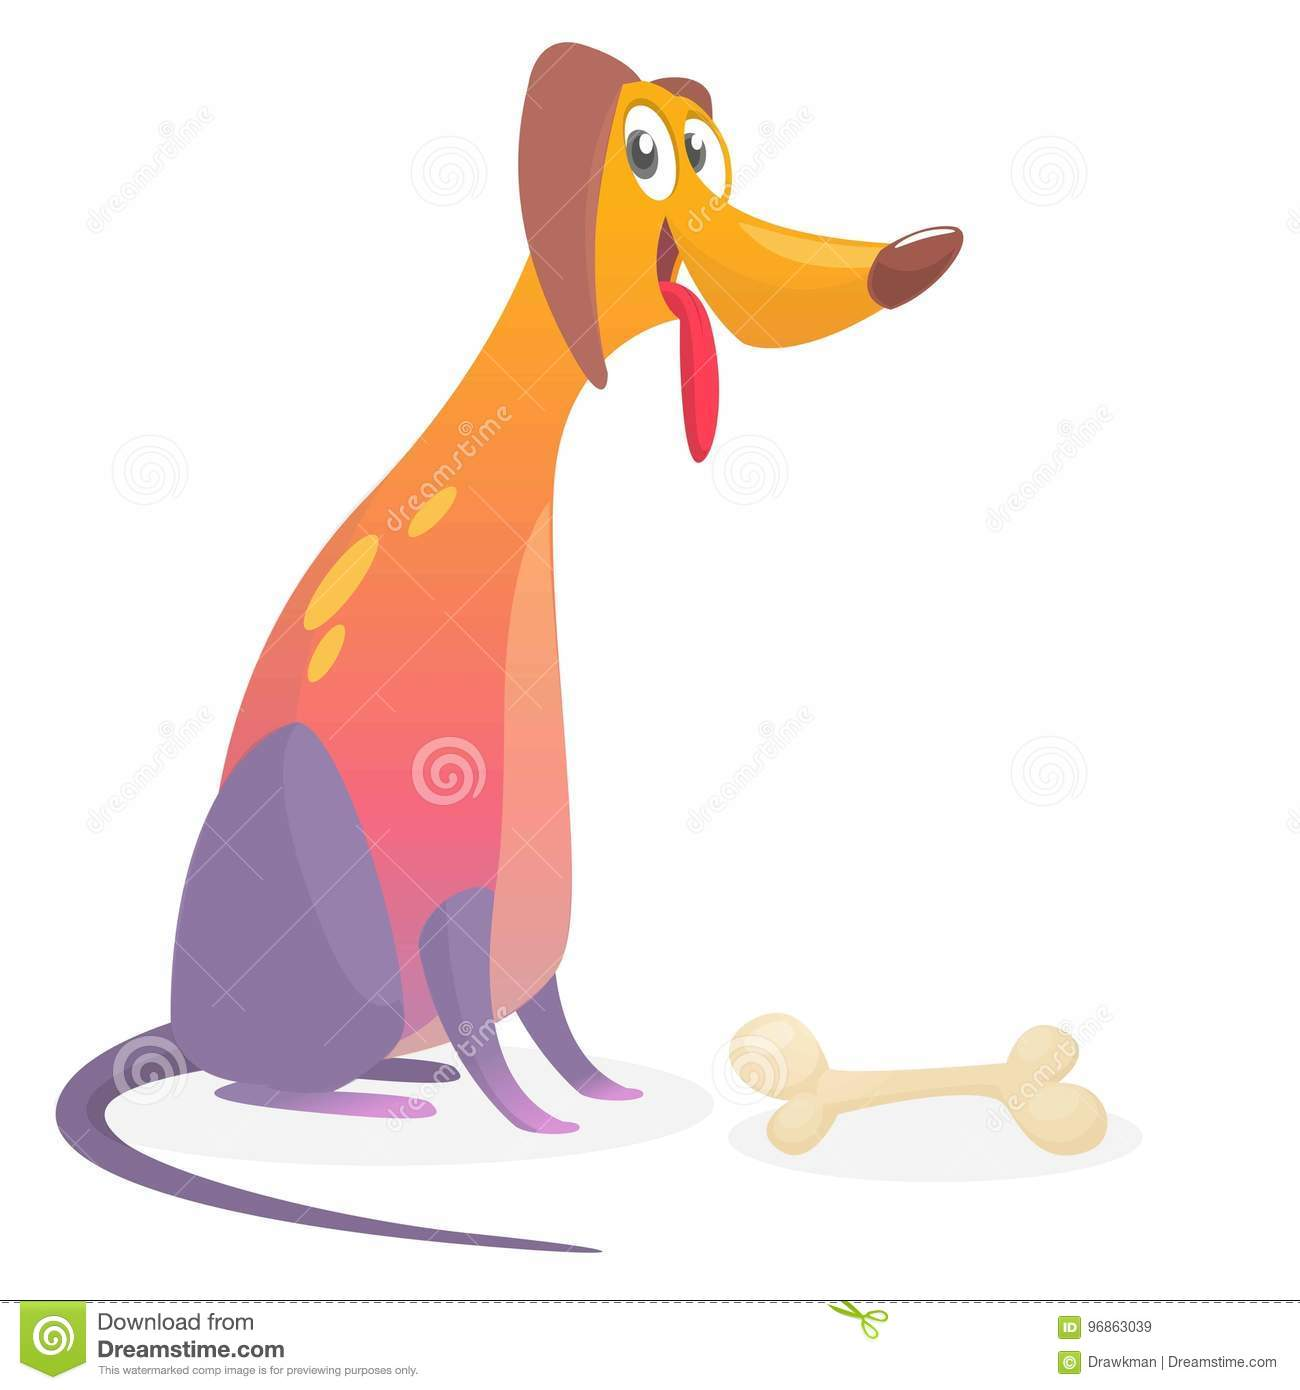 Cartoon colorful dog. Happy furry dog sitting. Design for icon or book illustration.